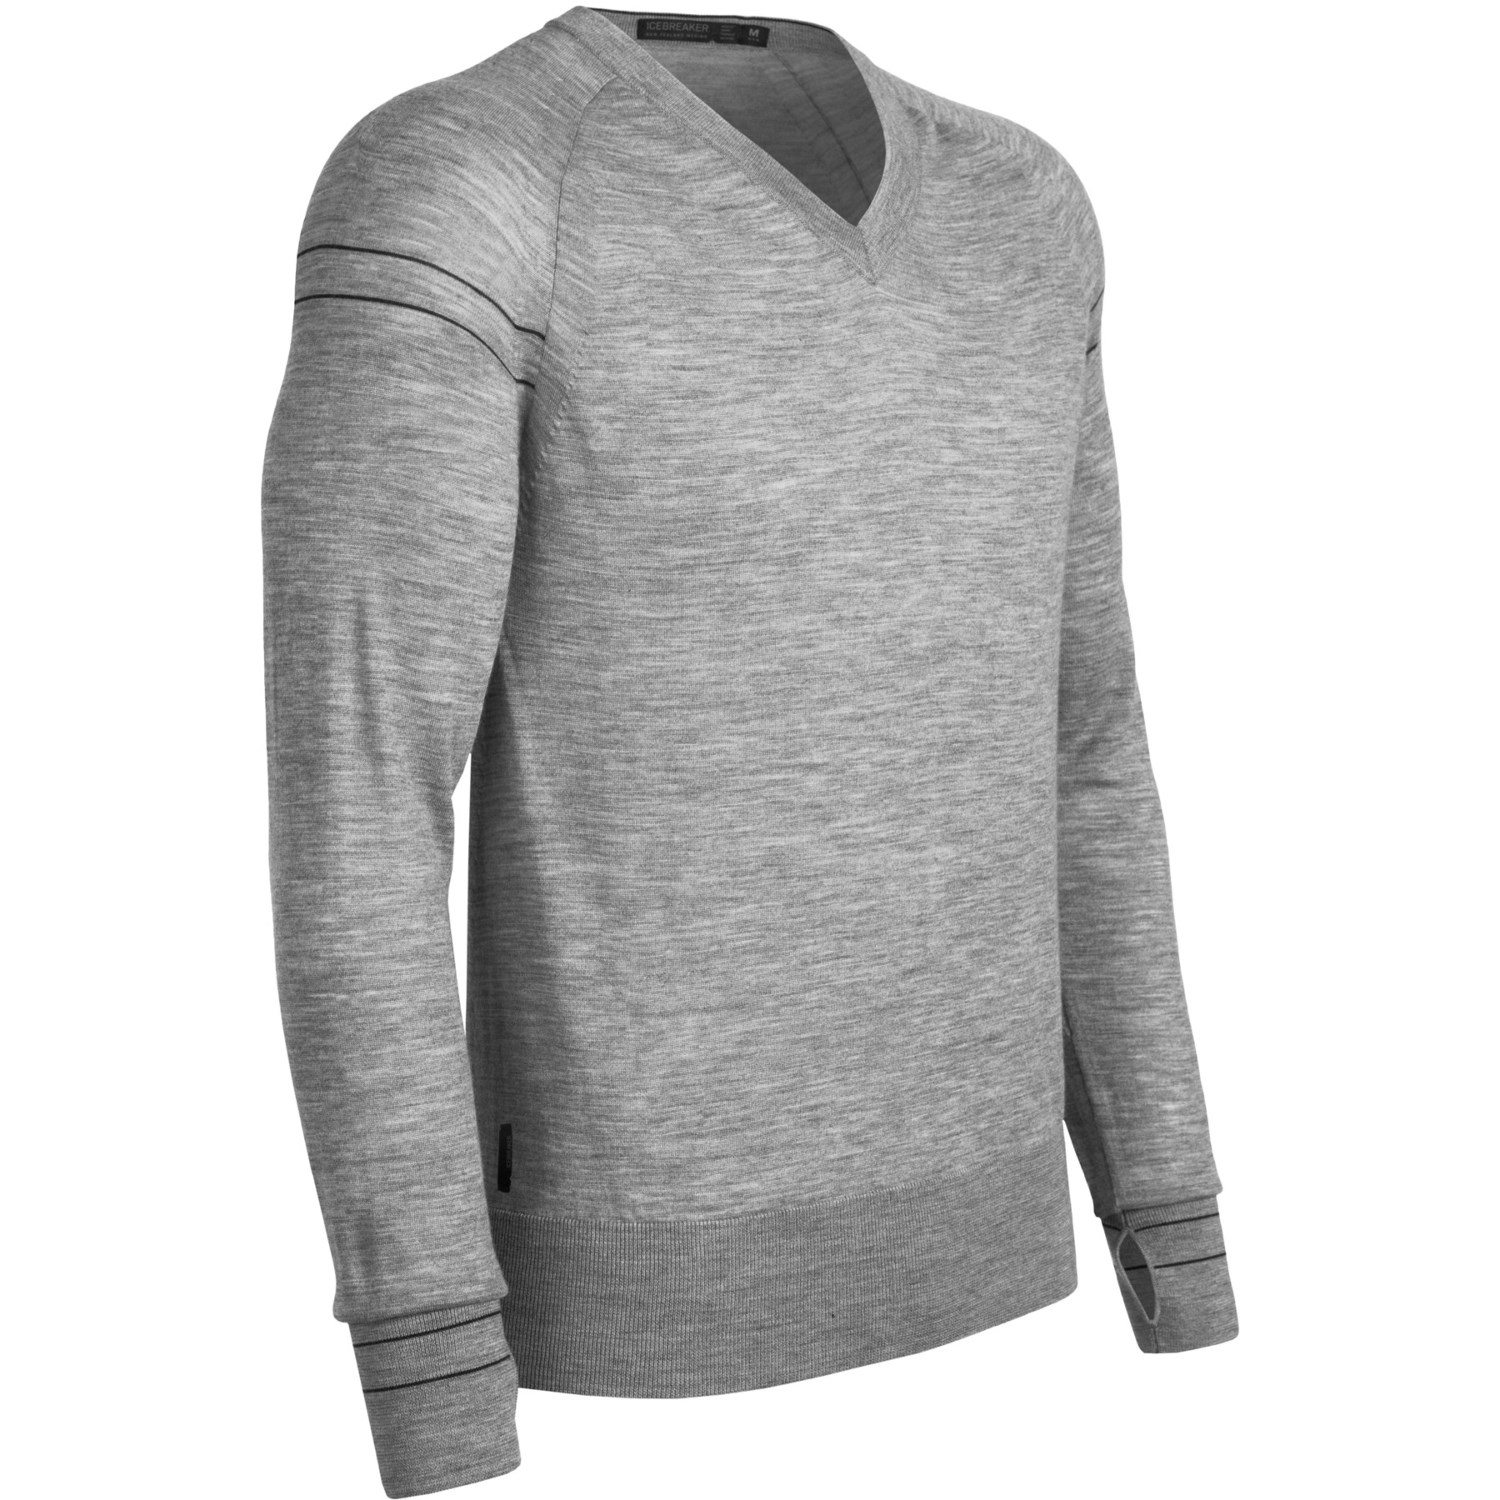 icebreaker aries merino wool shirt v neck long sleeve for men save 67. Black Bedroom Furniture Sets. Home Design Ideas